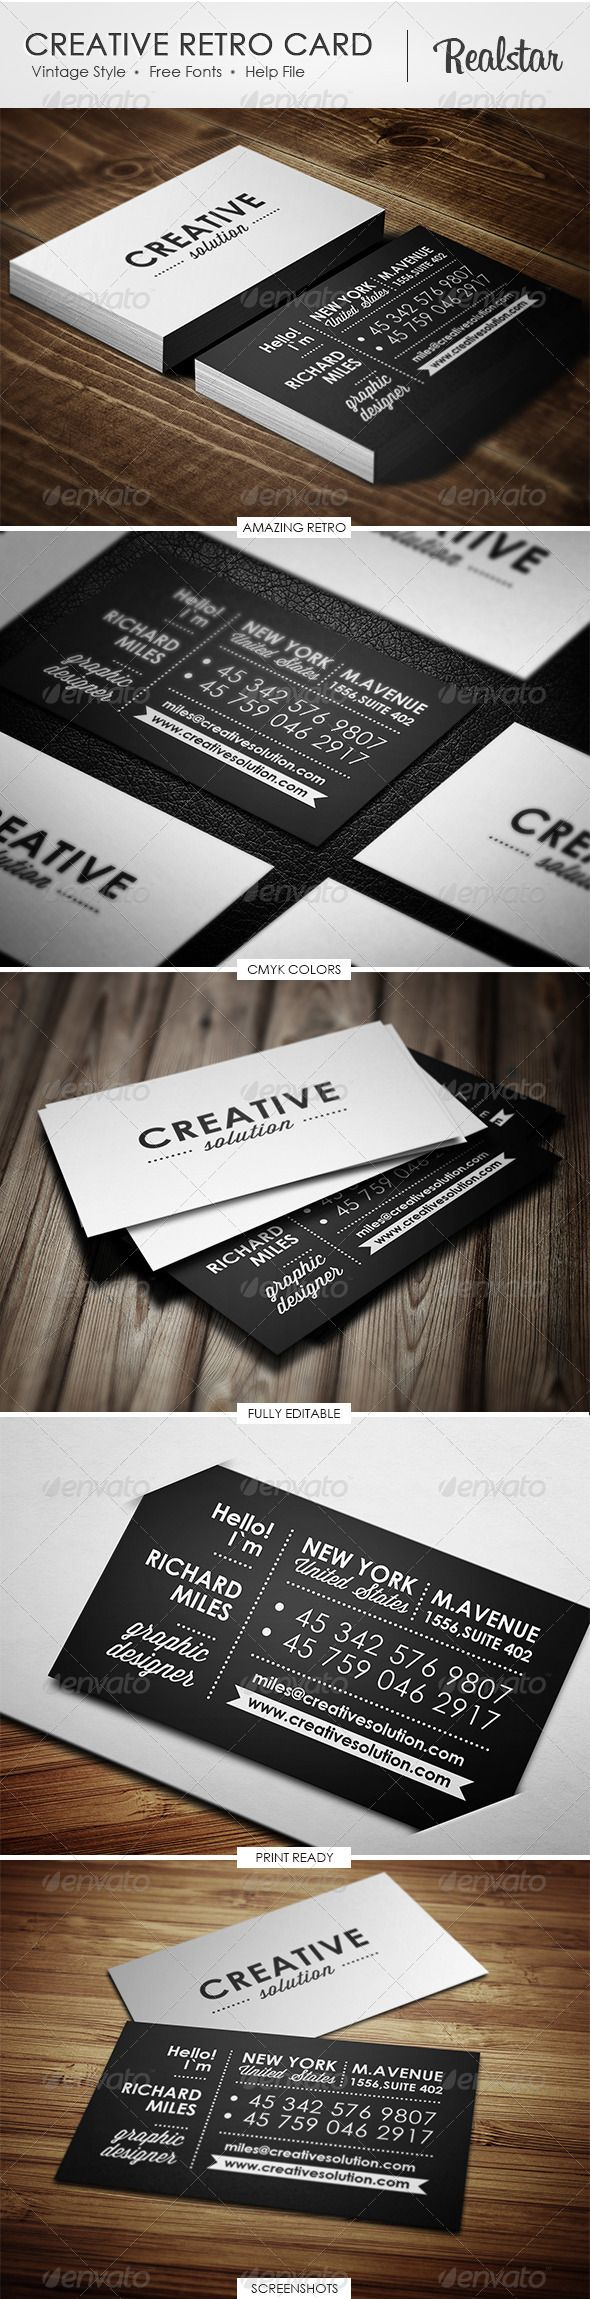 Creative Retro Business Card http://graphicriver.net/item/creative-retro-business-card/4619002?WT.ac=new_item_1=new_item_author=Realstar